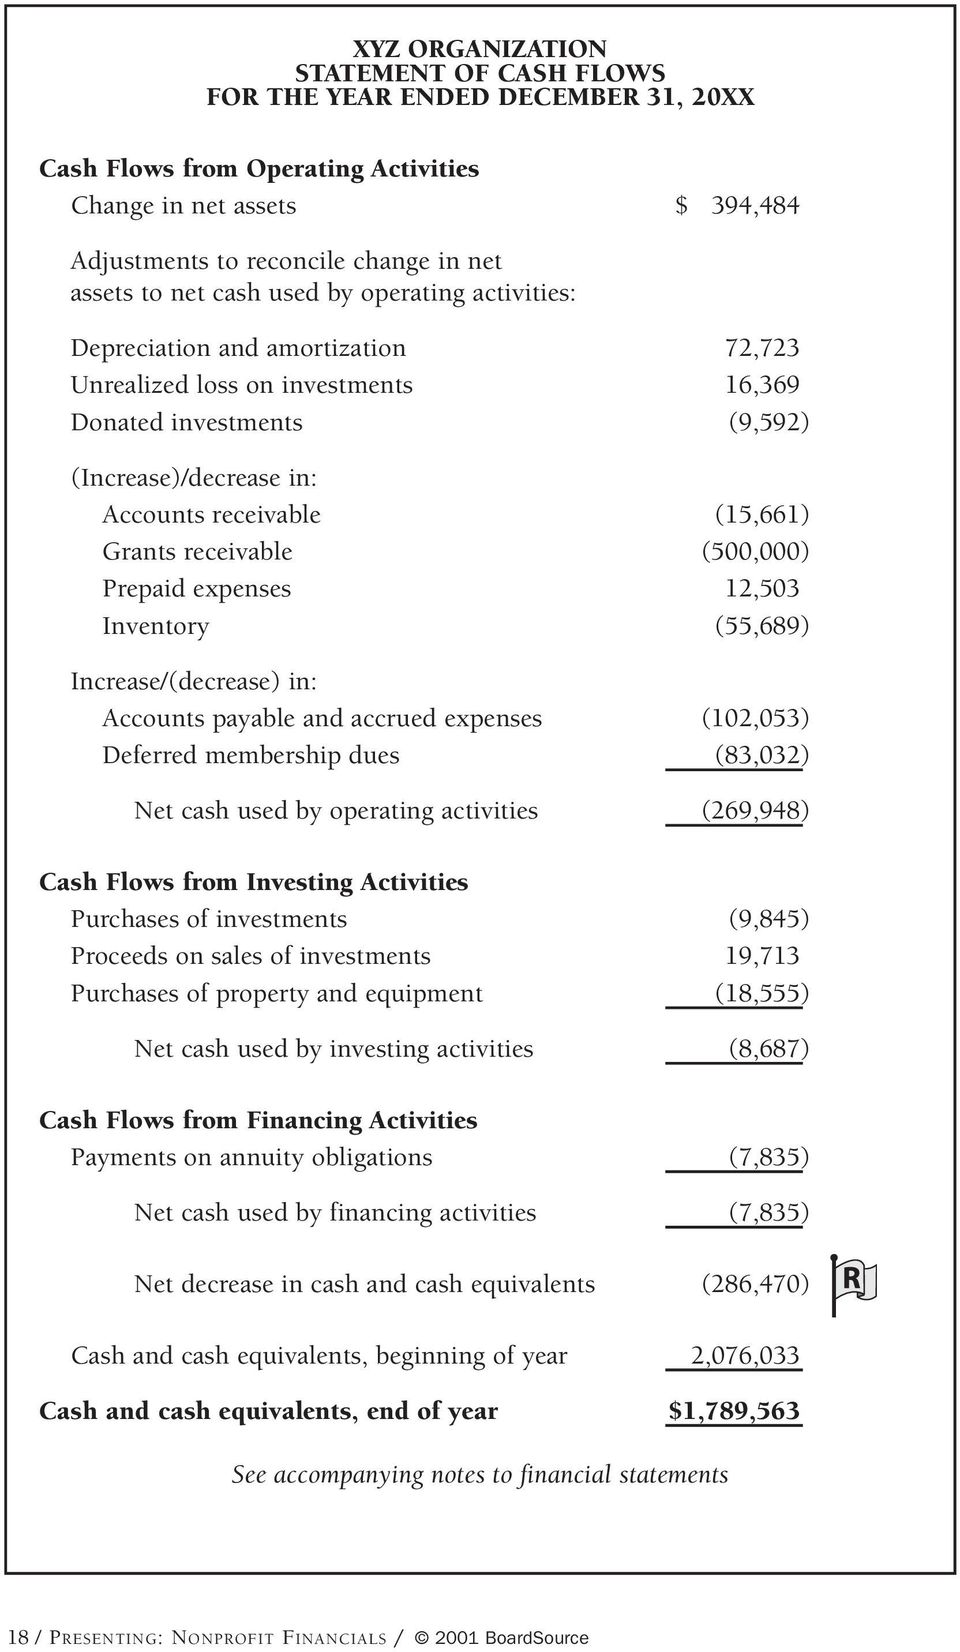 receivable (500,000) Prepaid expenses 12,503 Inventory (55,689) Increase/(decrease) in: Accounts payable and accrued expenses (102,053) Deferred membership dues (83,032) Net cash used by operating